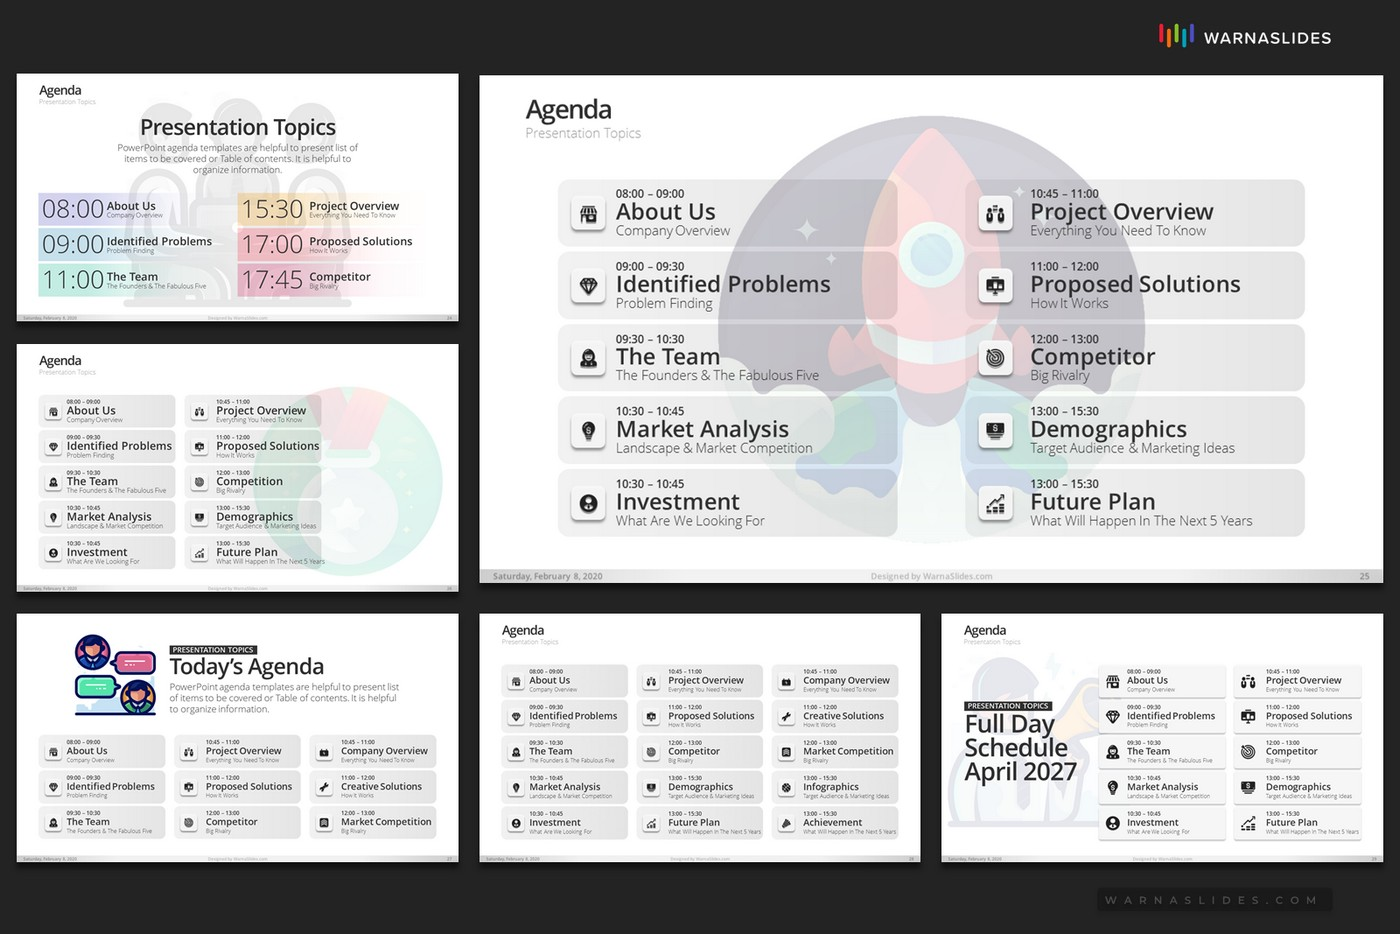 Agenda-Meeting-PowerPoint-Template-2020-for-Business-Pitch-Deck-Professional-Creative-Presentation-by-Warna-Slides-010